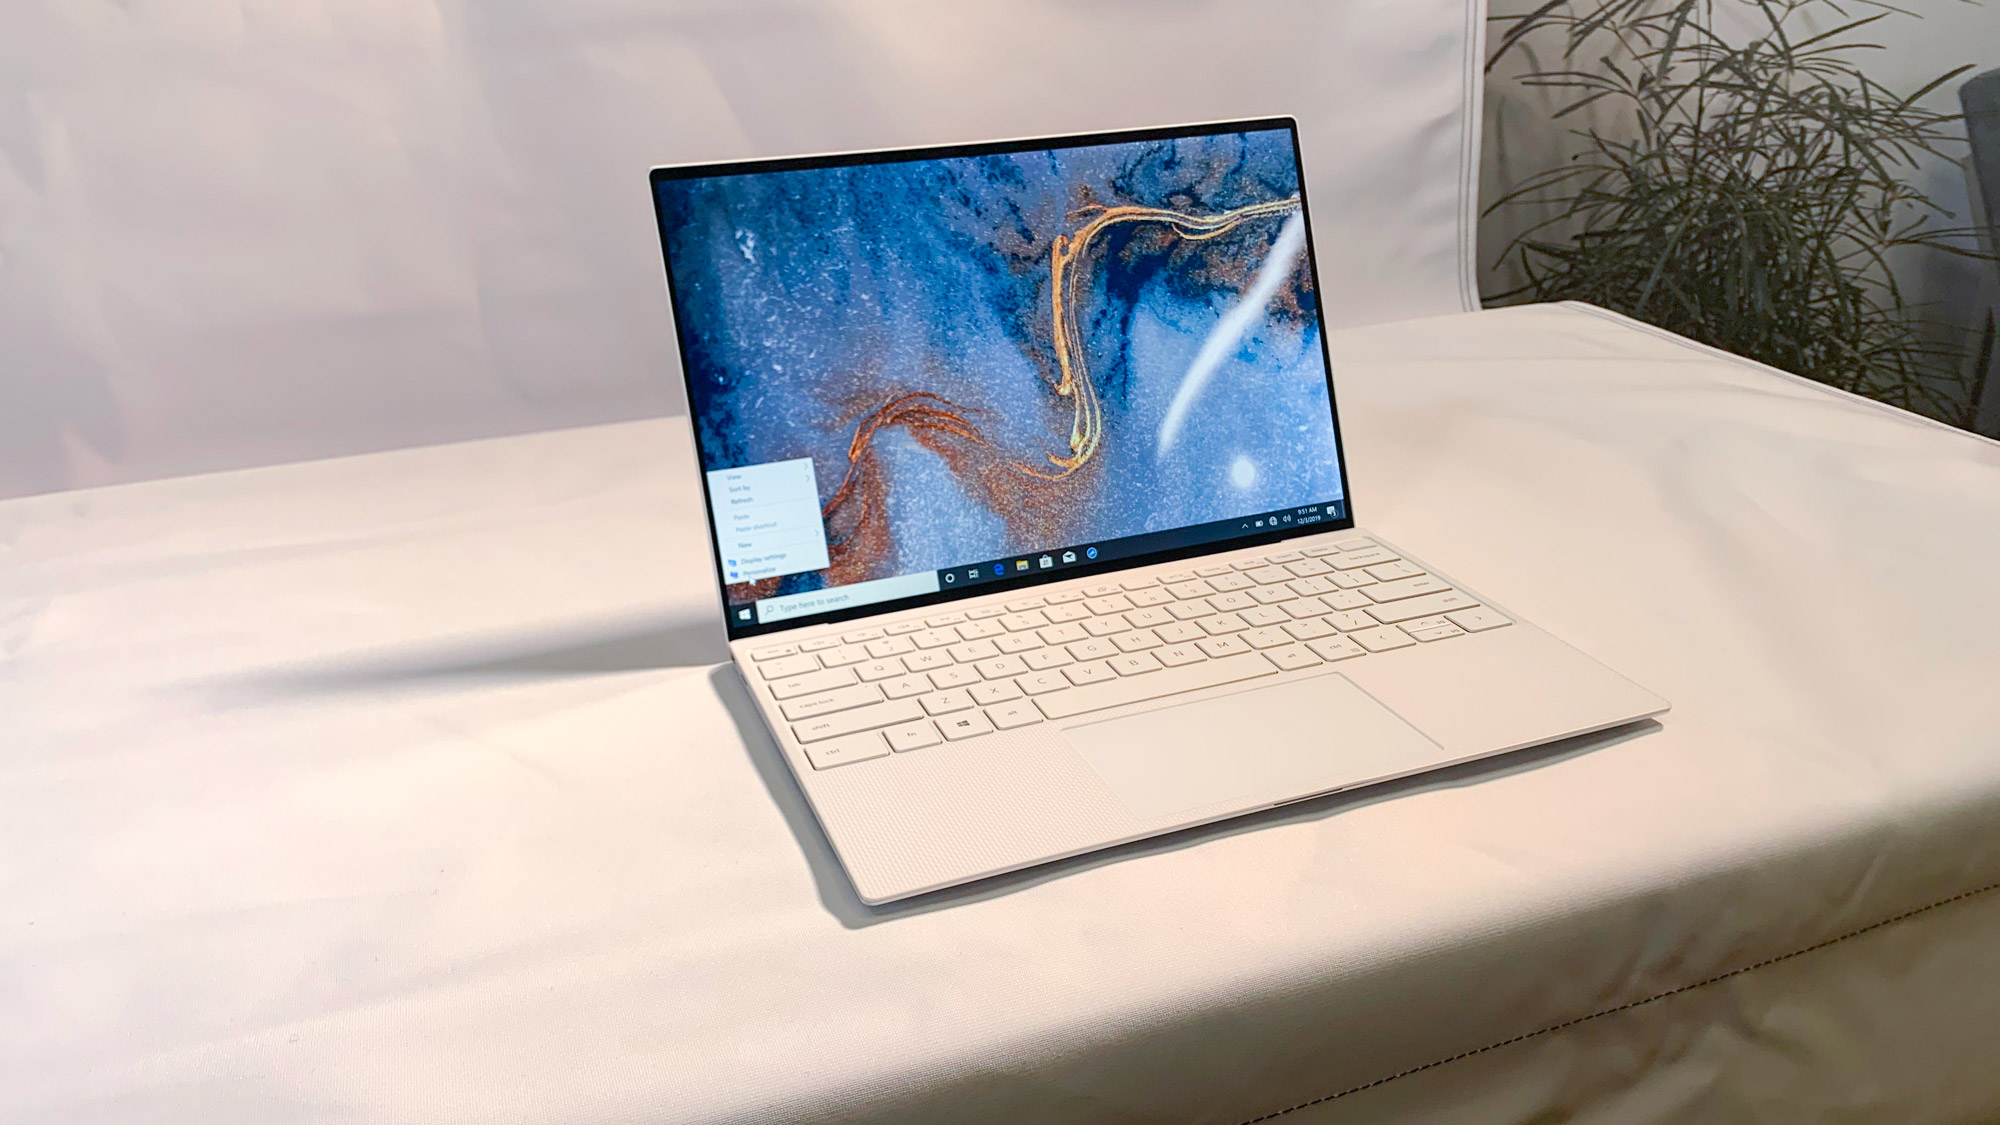 Best Laptop for Videos And Pictures